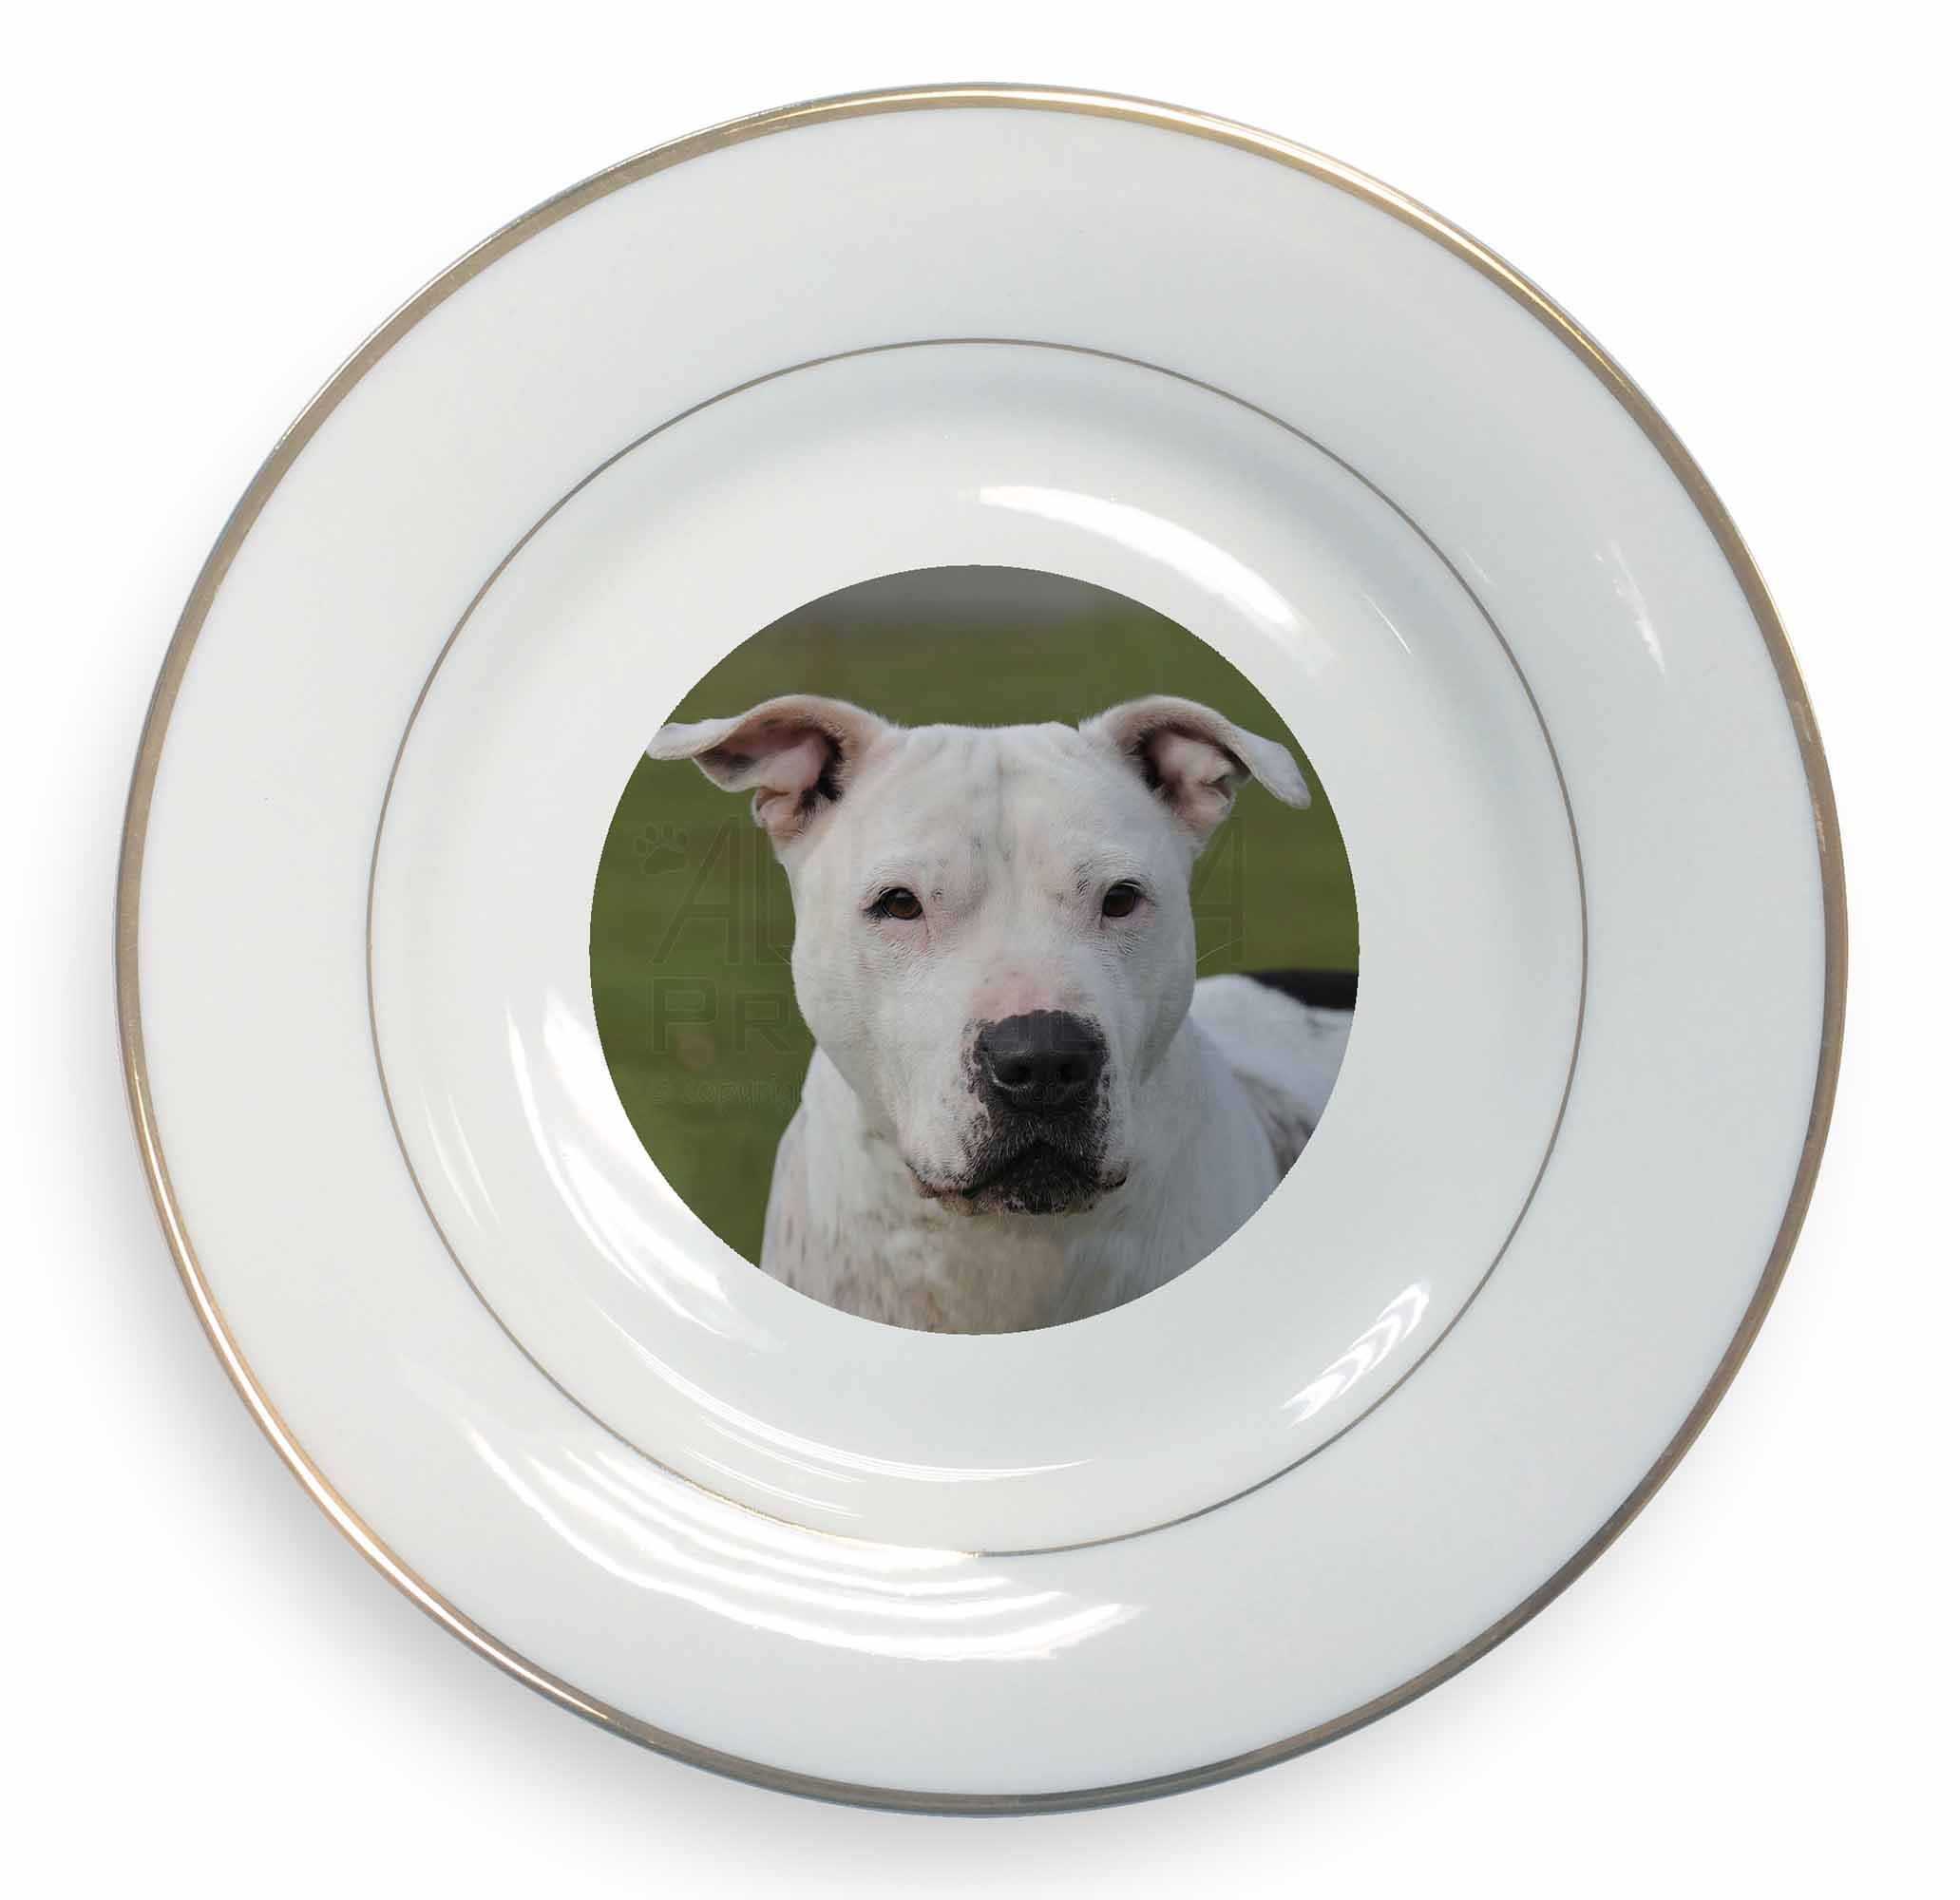 American Staffordshire Bull Terrier Dog Decorative Ceramic Plate with Gold Leaf, Ref:AD-SBT5PL